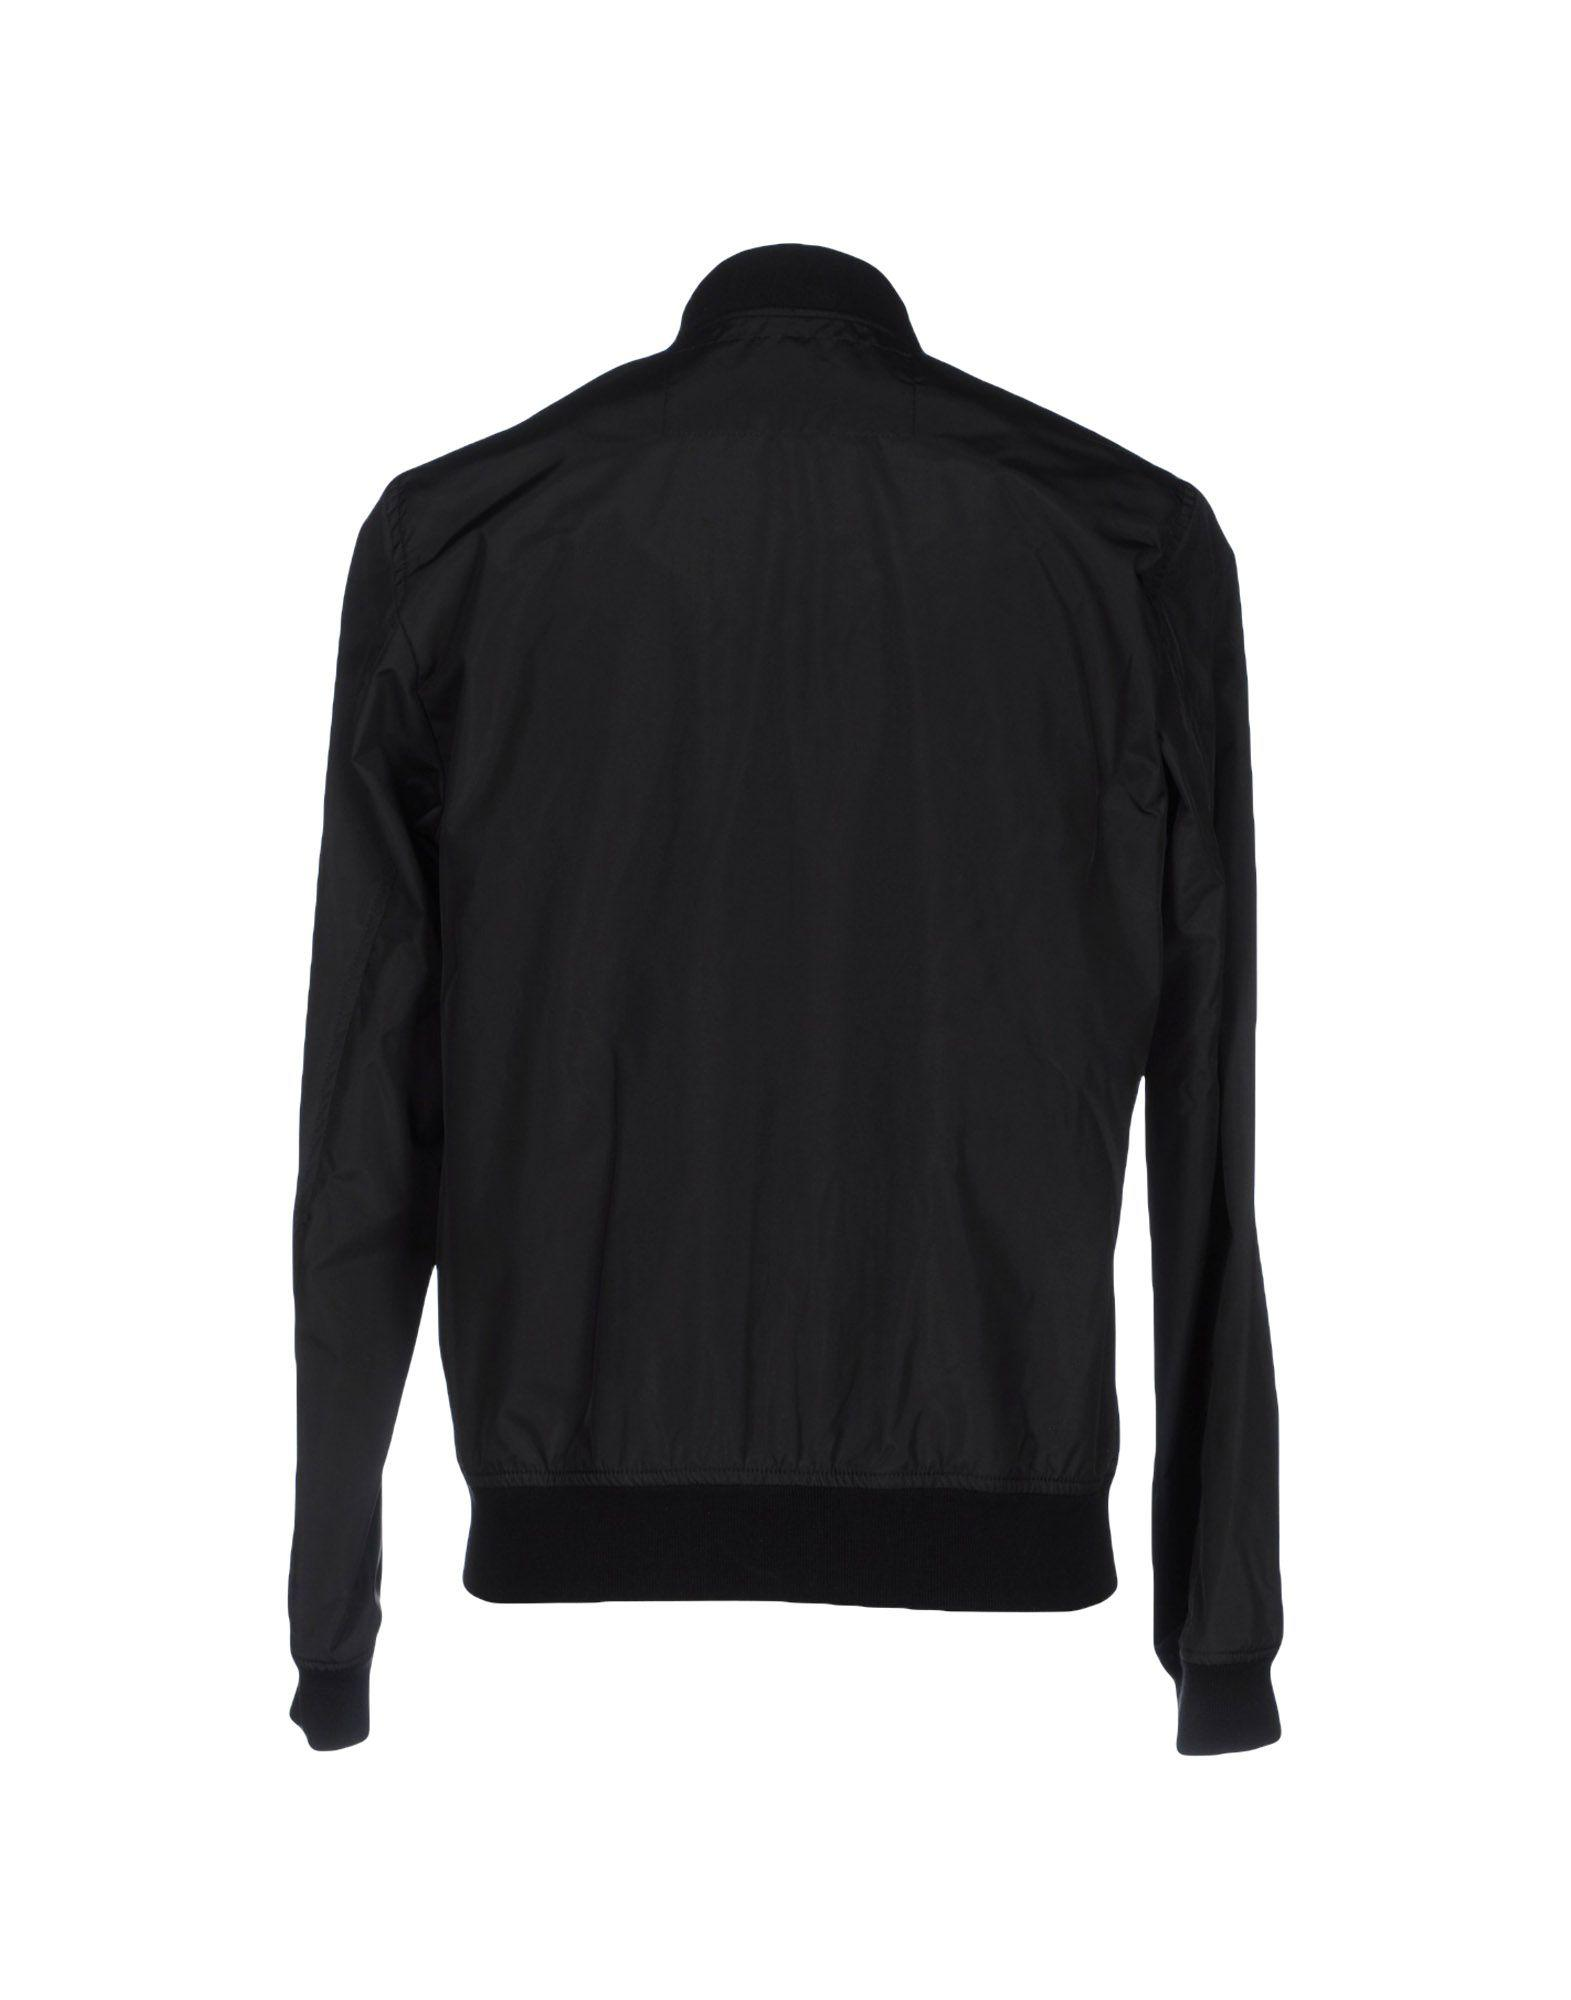 Love Moschino Cotton Jacket in Black for Men